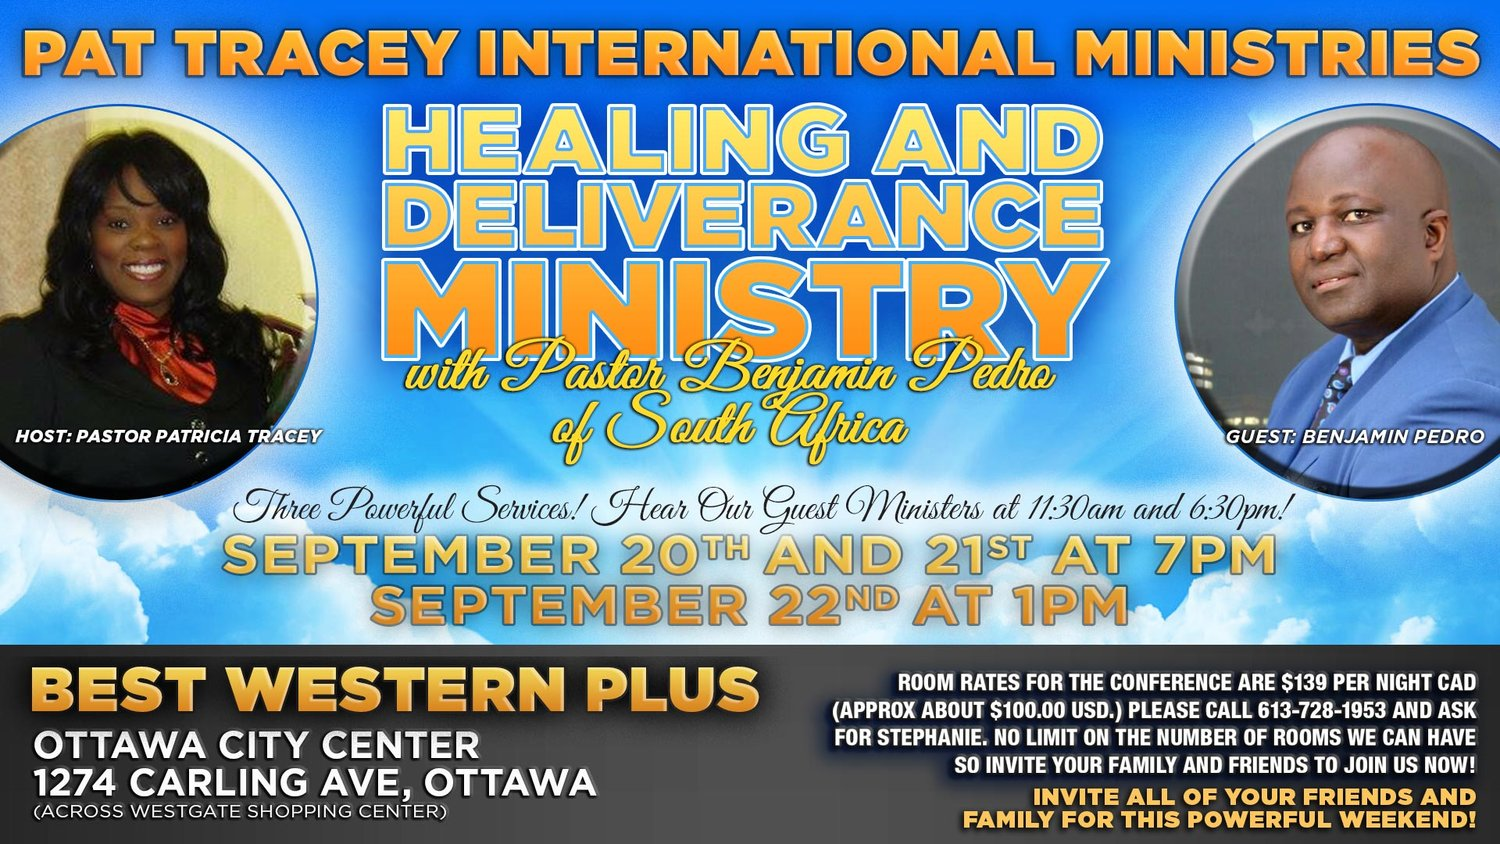 Events — Pat Tracey International Ministries